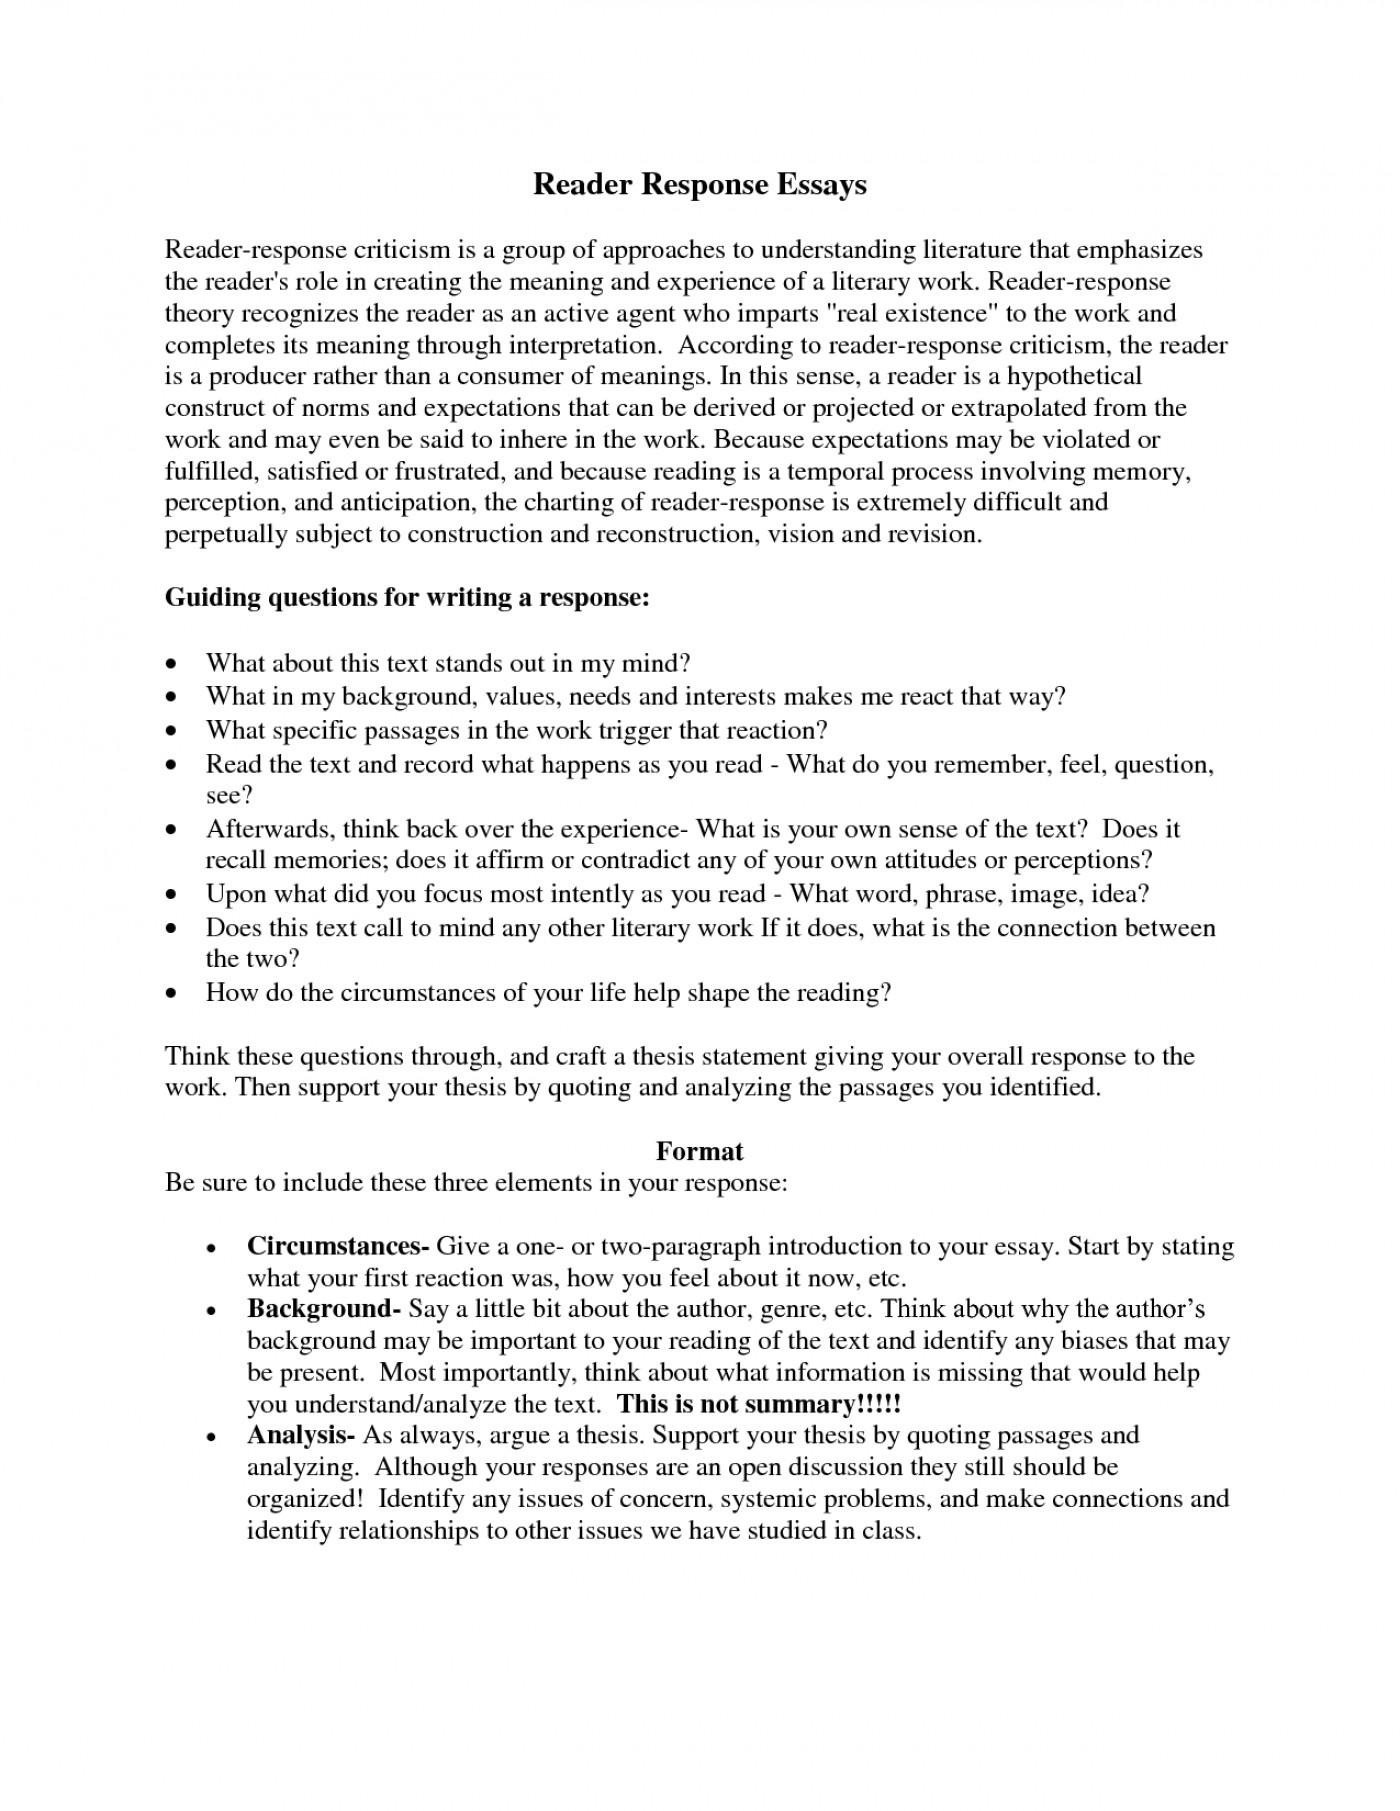 Limiting thesis statement question